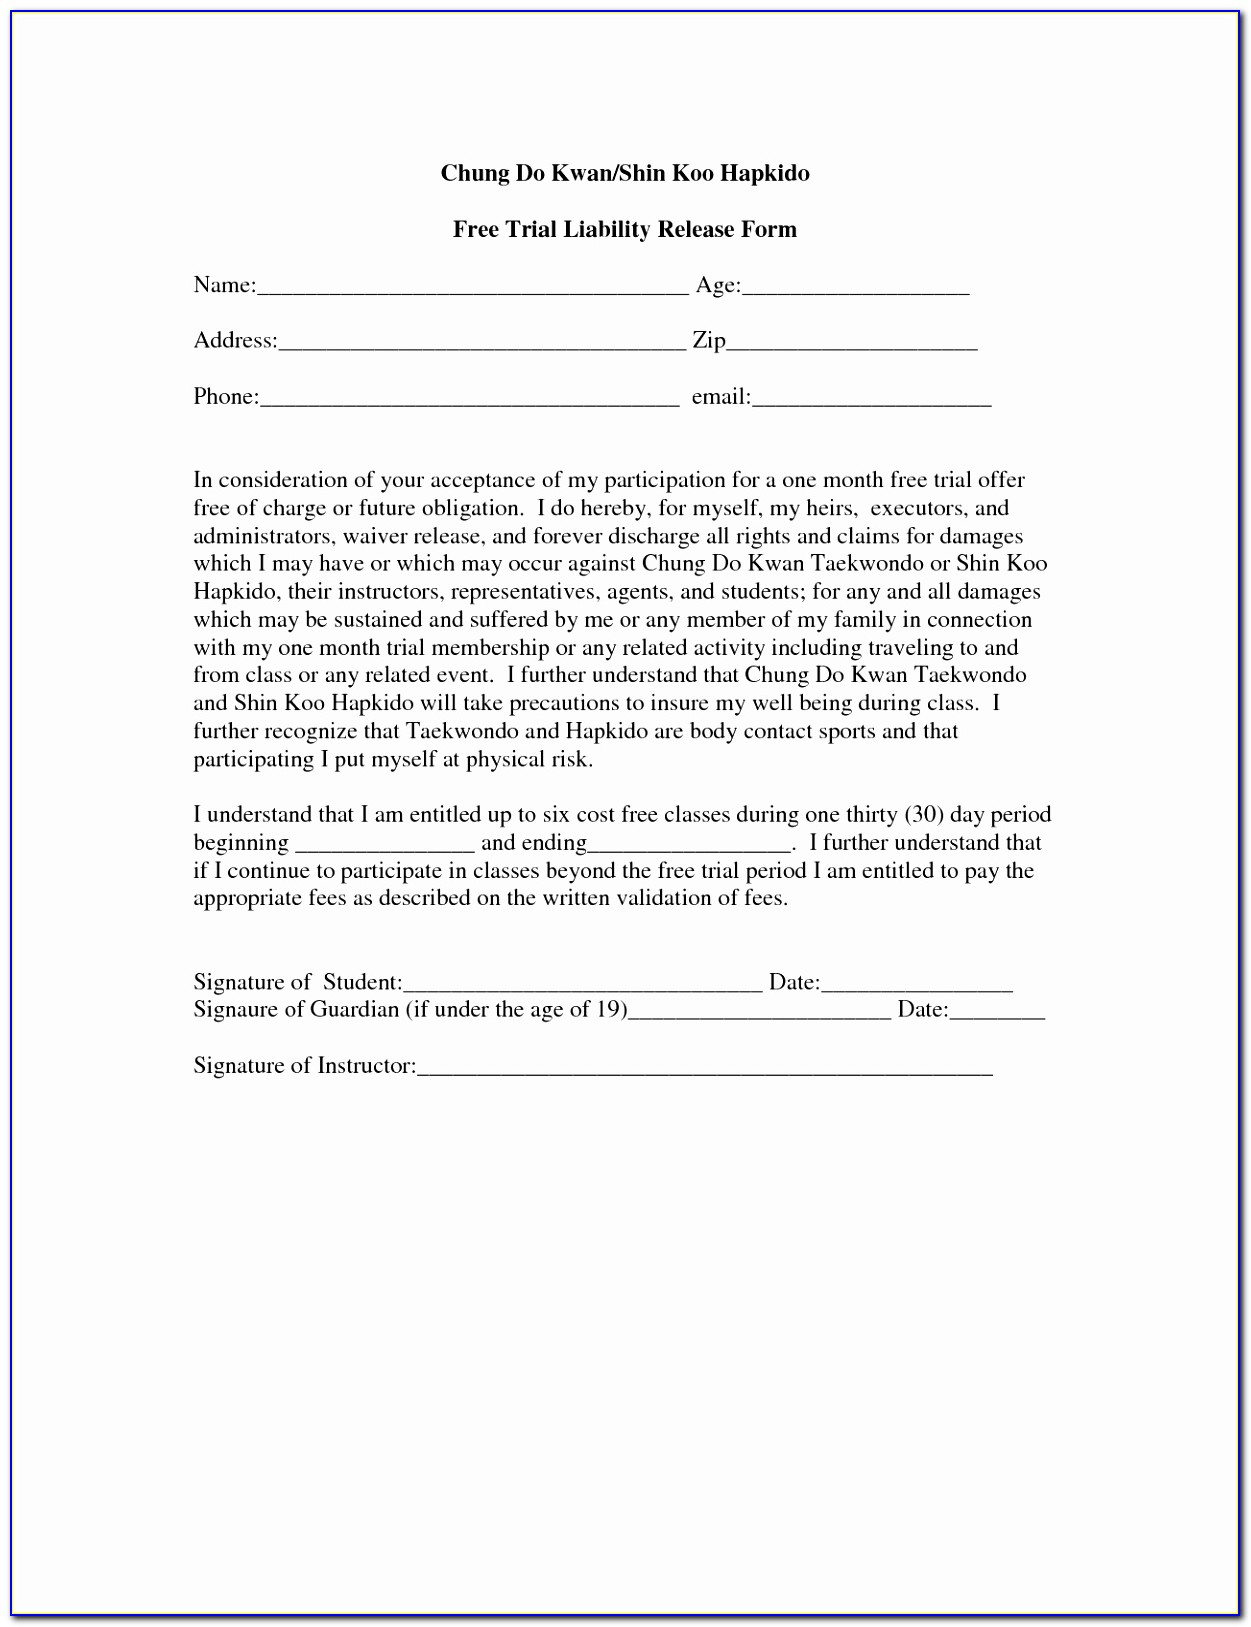 Standard Liability Release Form Form Example Ideas Printable Fitness Waiver And Release Form Template Beautiful Pdf Word Excel Template Oeovu